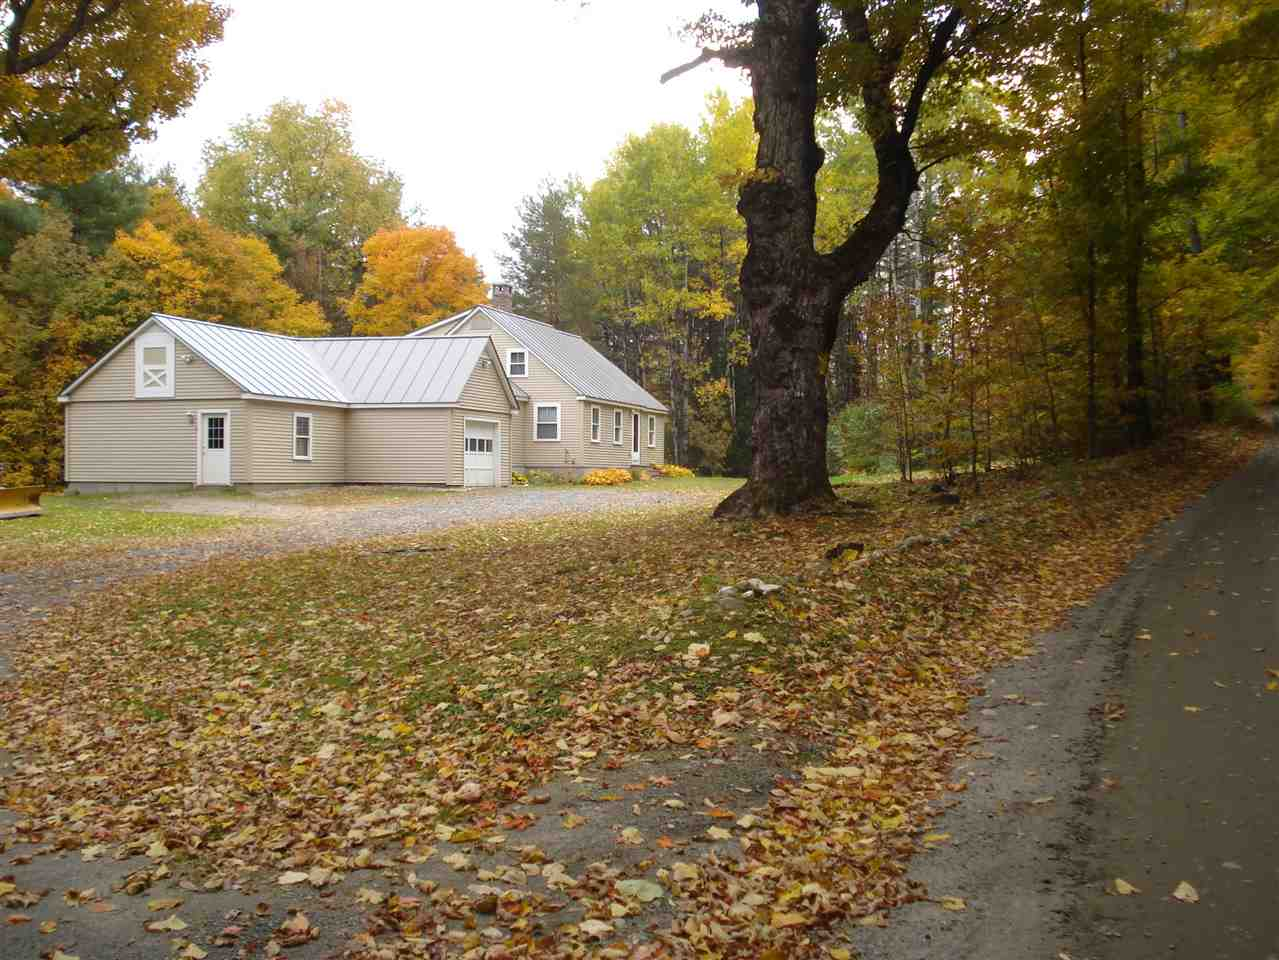 HARTLAND VT Homes for sale